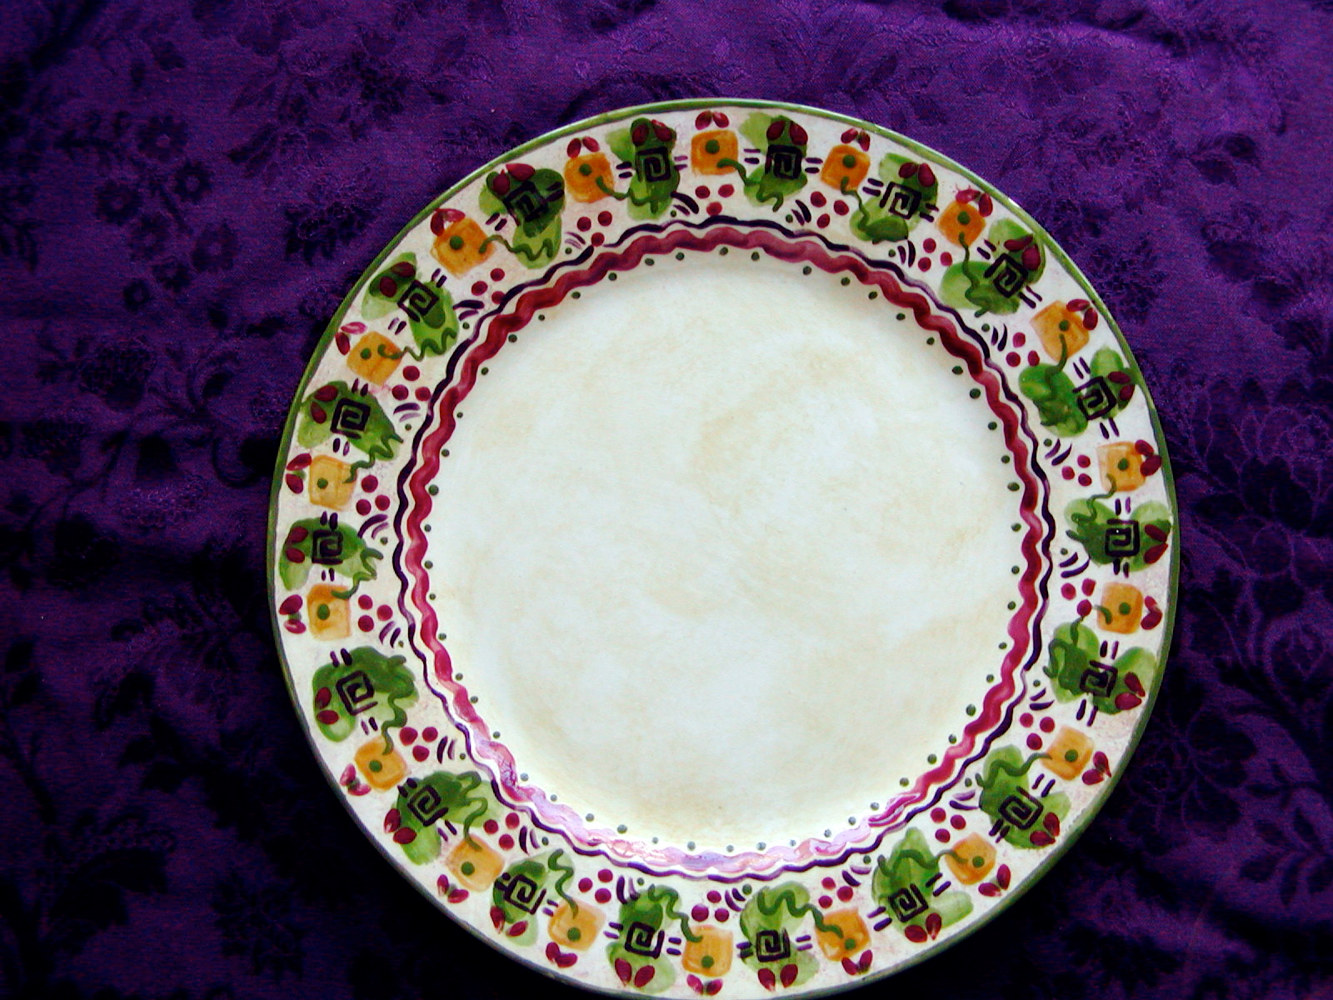 Painting Italianate Eclectic Glazeworks: Dinner Plate Design 4 by Victoria Avila